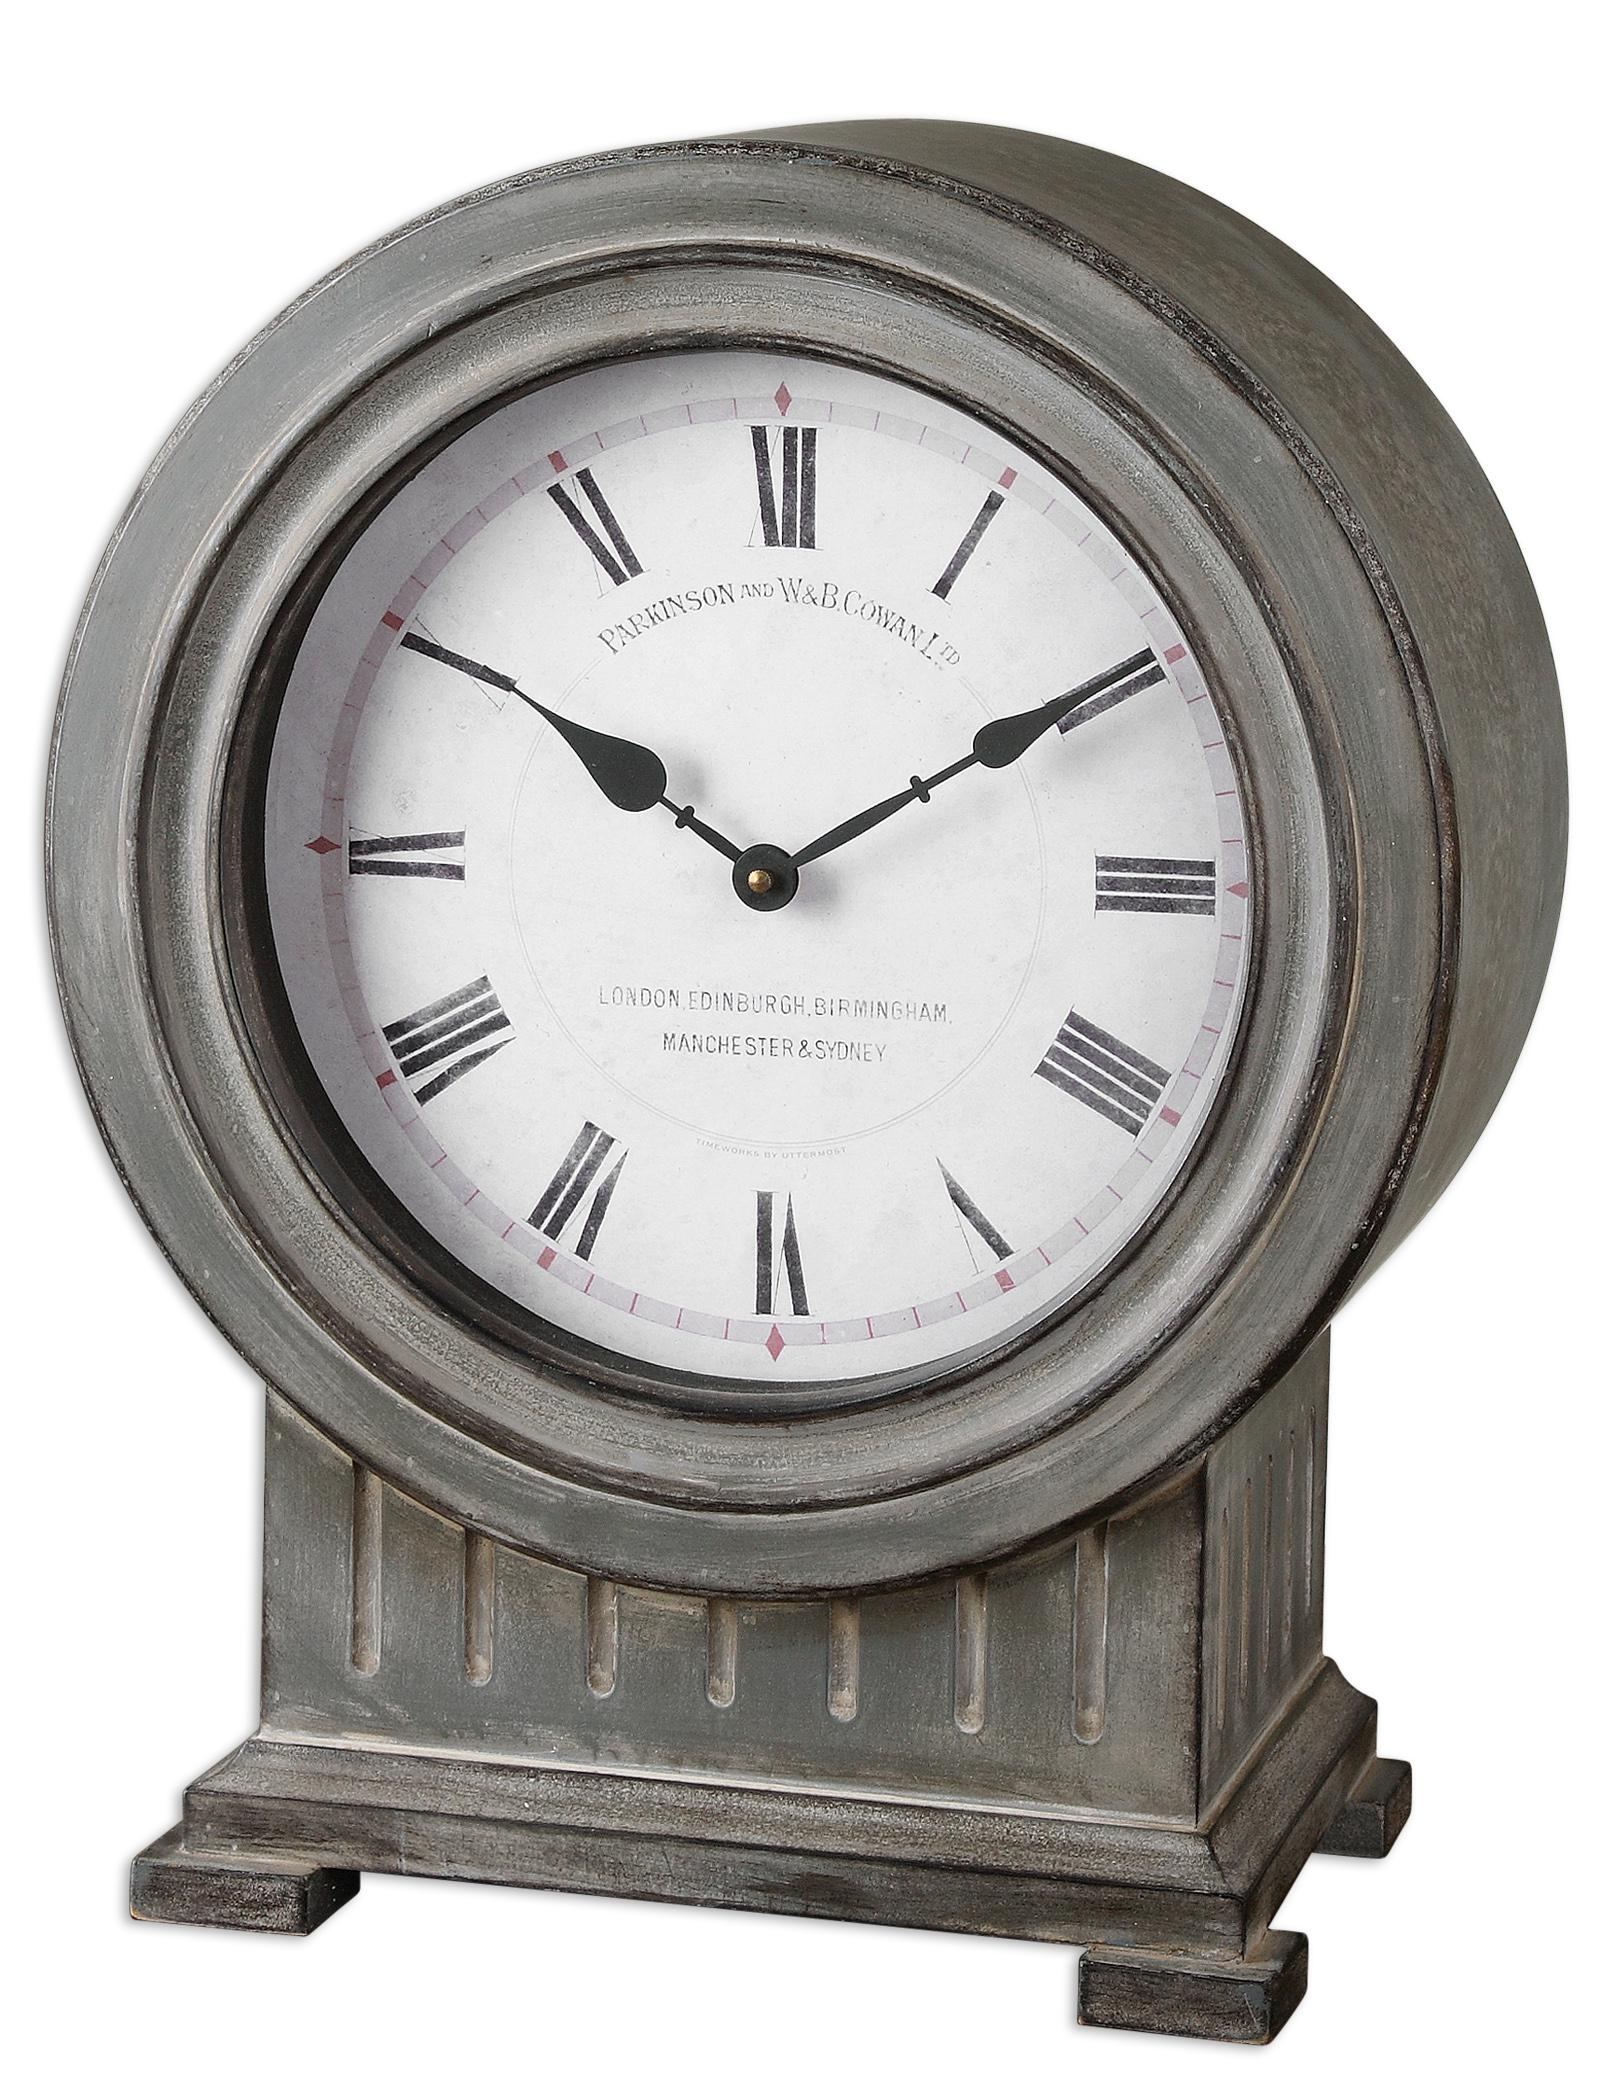 Uttermost Clocks Chouteau Mantel Clock - Item Number: 06088